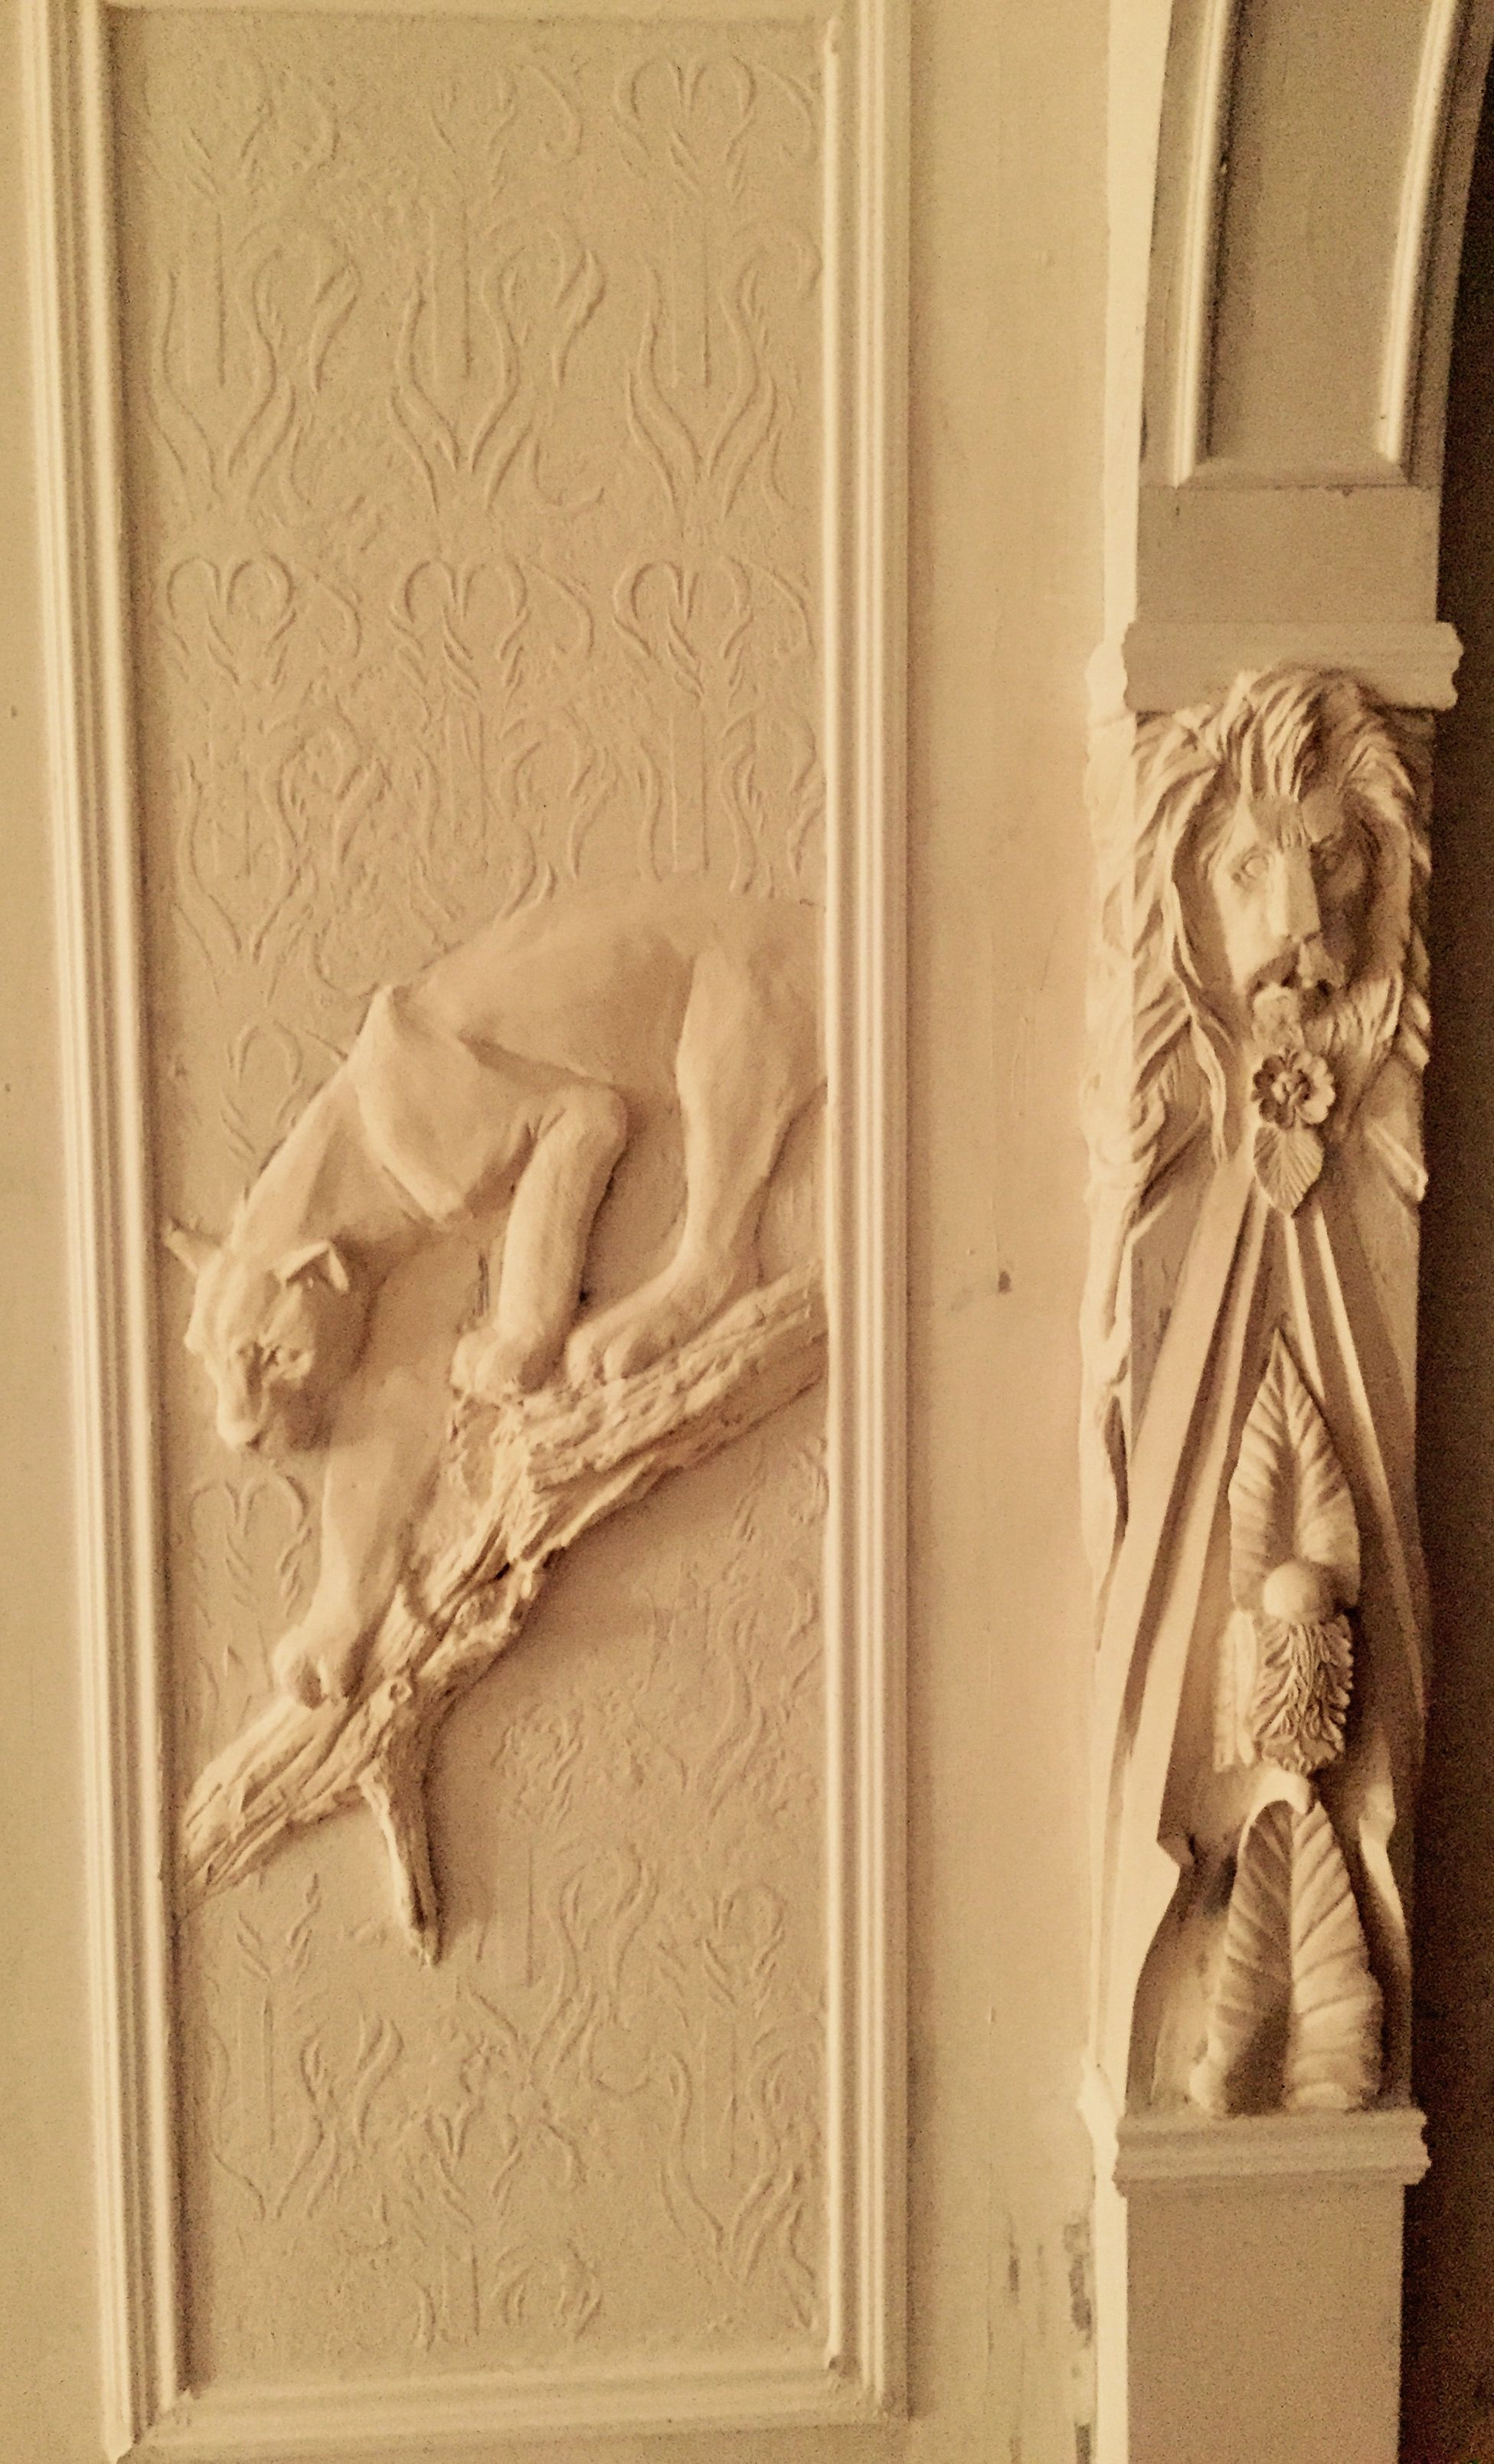 Pin by on pinterest drywall plaster art and 3d painting - Sculpture sur bois ...